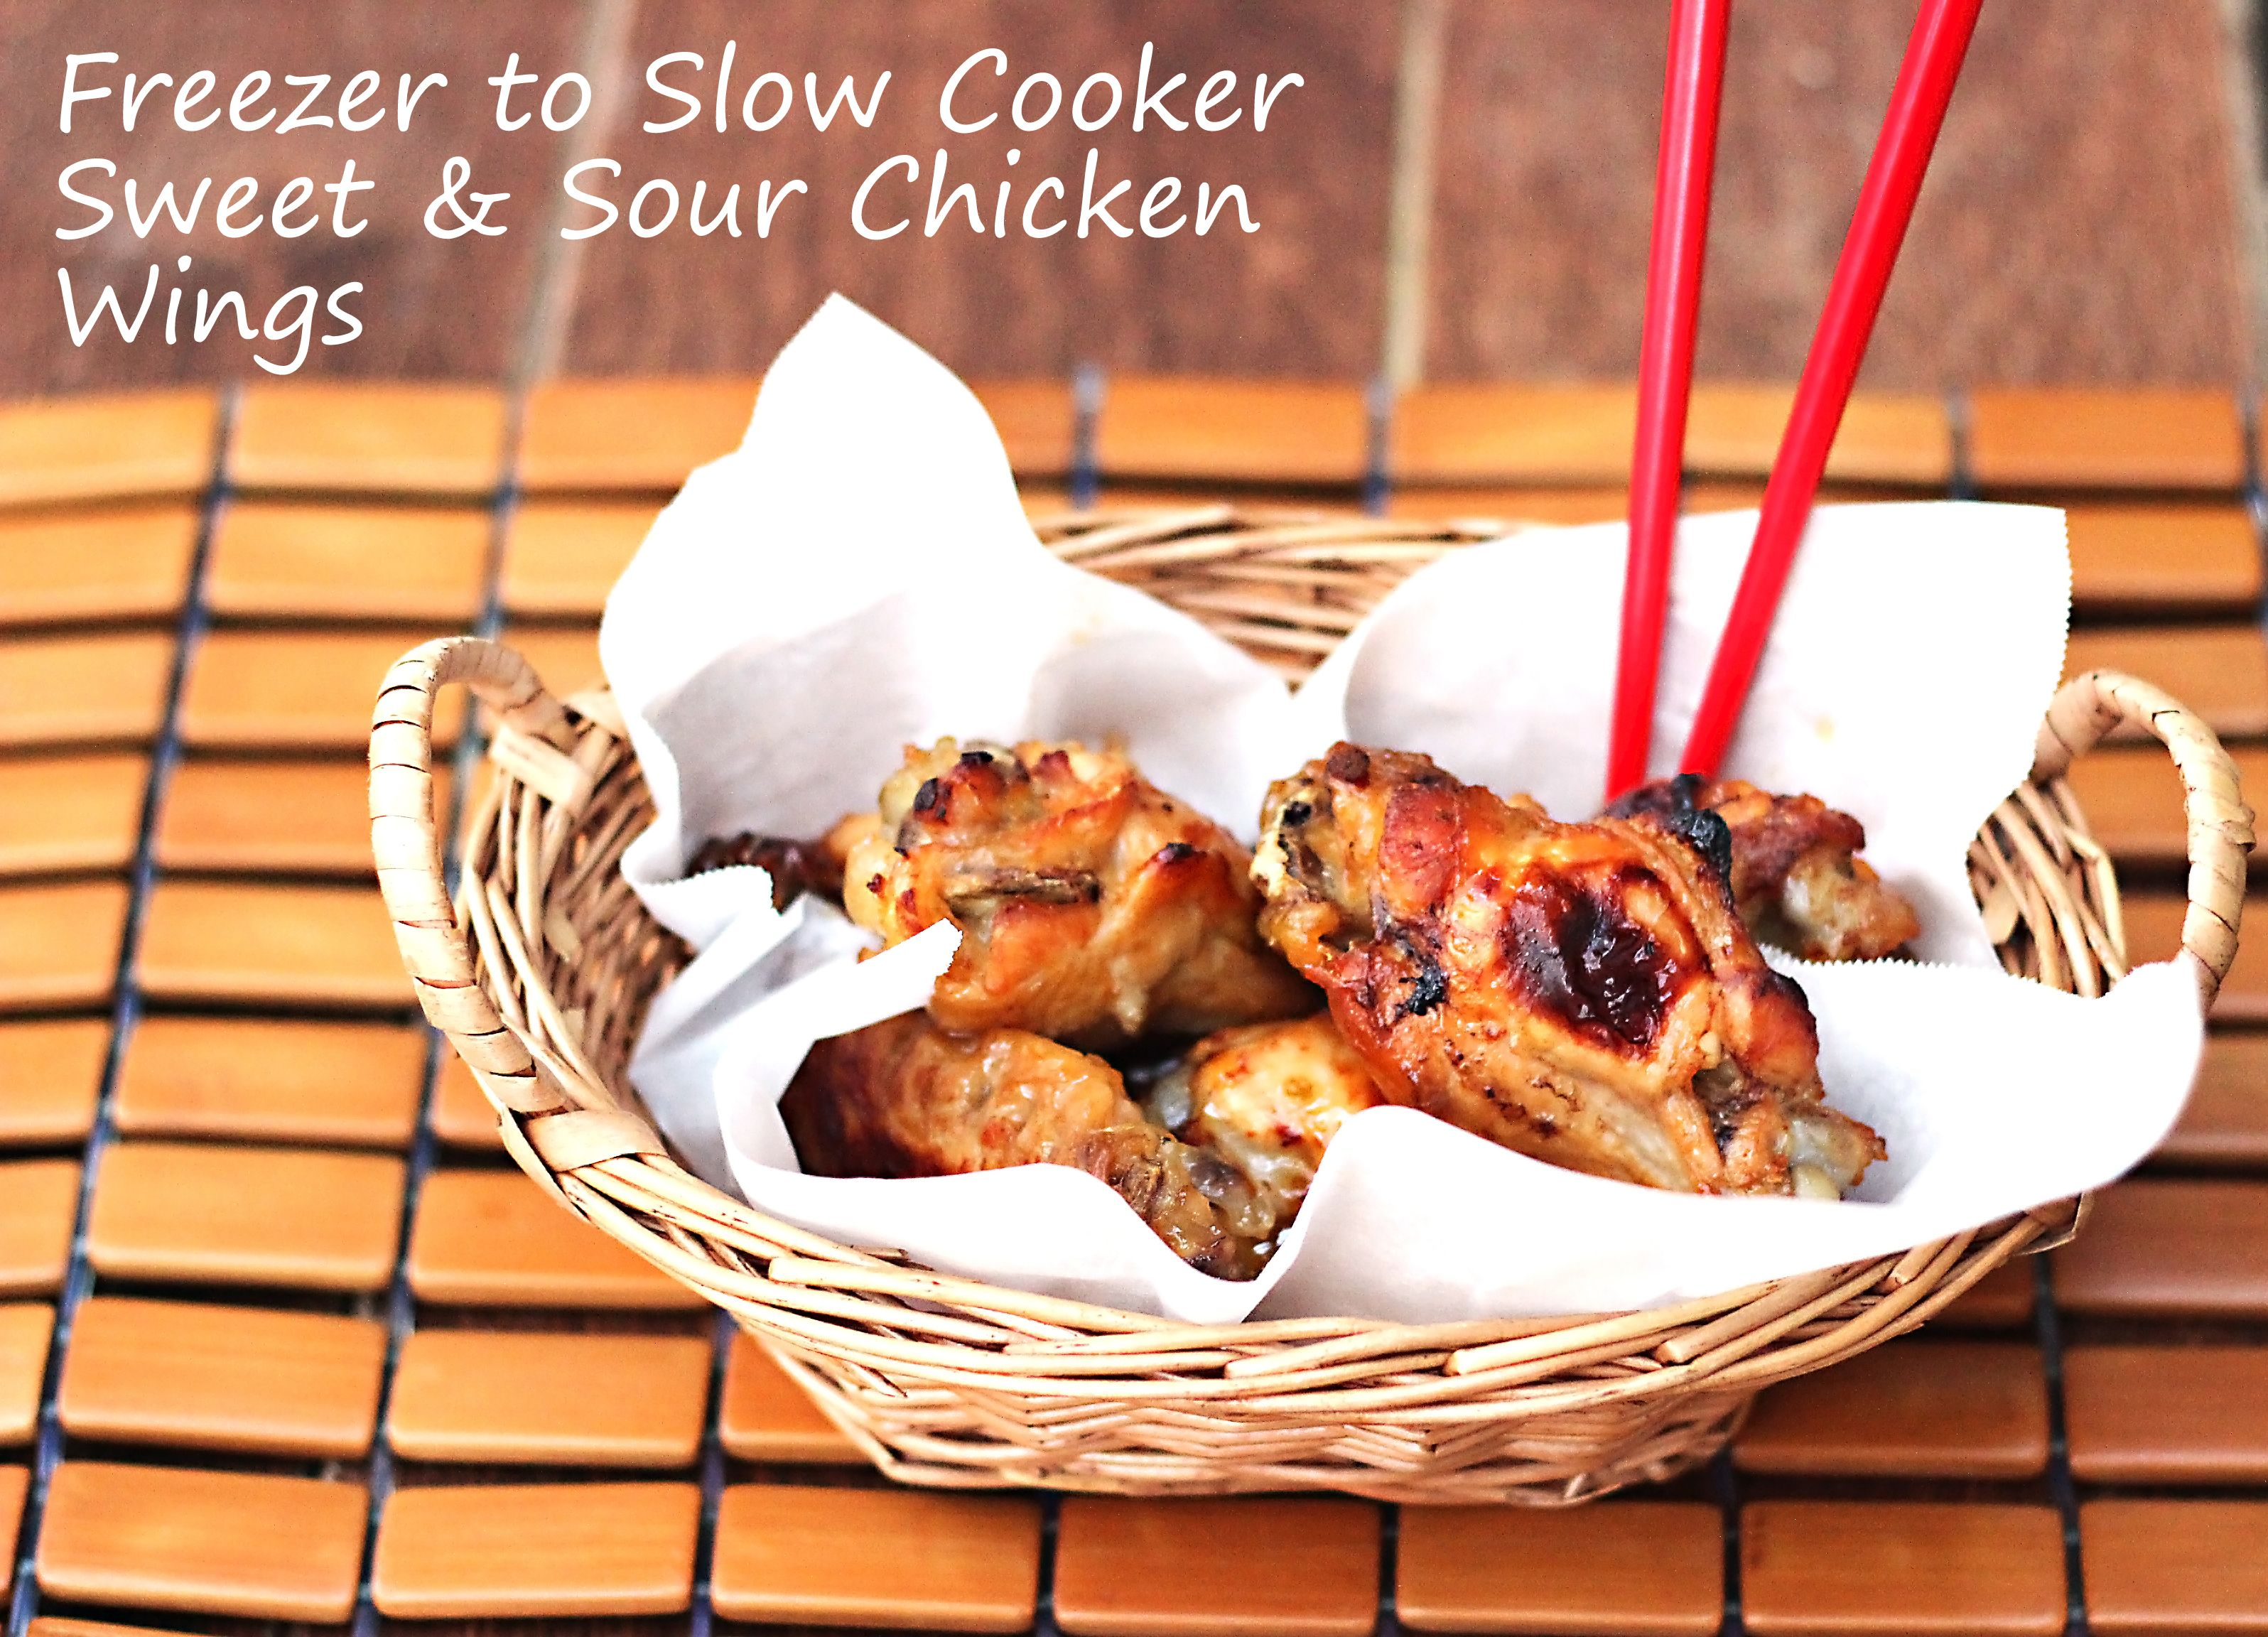 Slow Cooker Sweet and Sour Chicken Wings